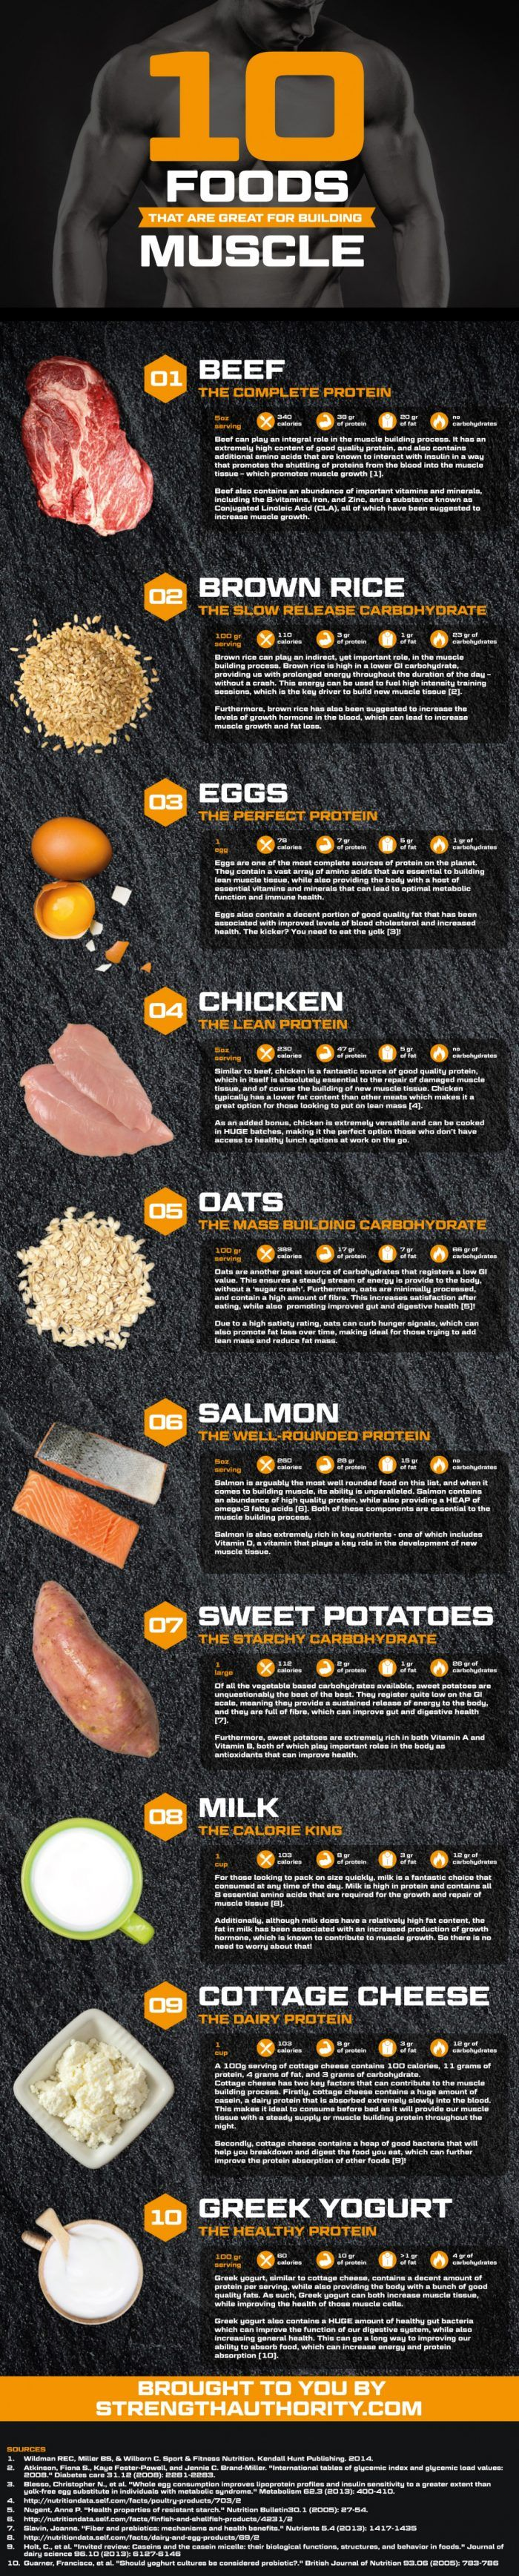 10-foods-that-are-great-for-building-muscle_58372cc587b50_w1500